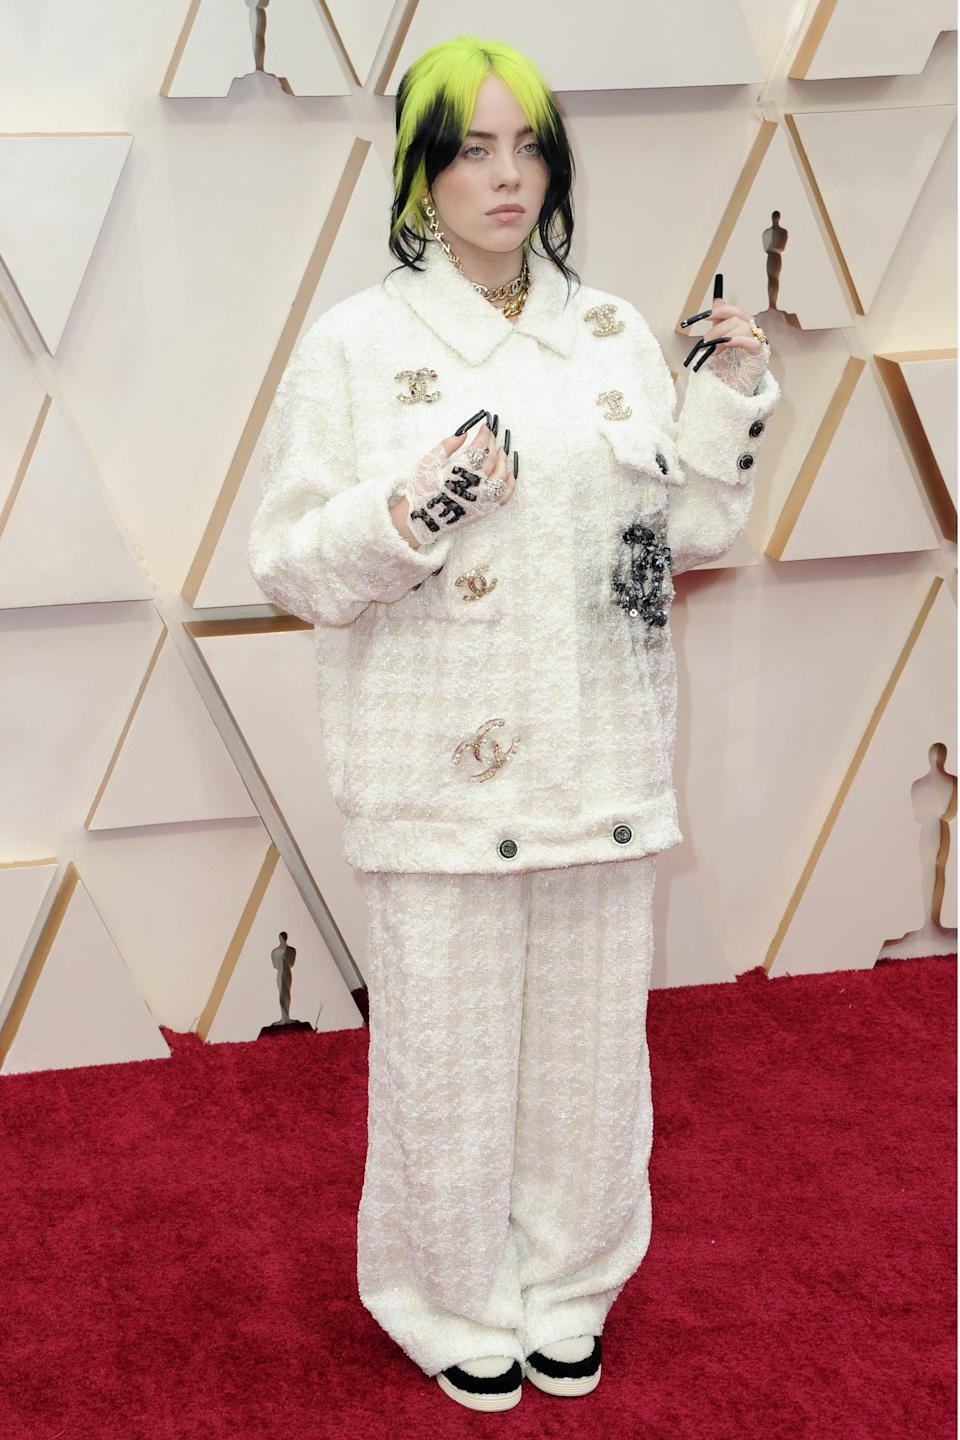 "<p><a href=""https://www.popsugar.com/entertainment/billie-eilish-speech-at-grammys-2020-video-47148712"" class=""link rapid-noclick-resp"" rel=""nofollow noopener"" target=""_blank"" data-ylk=""slk:Grammy-winning musician"">Grammy-winning musician</a> and June 2021 <a href=""https://www.popsugar.com/fashion/billie-eilish-style-british-vogue-2021-48300286"" class=""link rapid-noclick-resp"" rel=""nofollow noopener"" target=""_blank"" data-ylk=""slk:British Vogue cover star""><strong>British Vogue</strong> cover star</a> <a class=""link rapid-noclick-resp"" href=""https://www.popsugar.com/Billie-Eilish"" rel=""nofollow noopener"" target=""_blank"" data-ylk=""slk:Billie Eilish"">Billie Eilish</a> will attend the Met Gala for the first time as cochair.</p>"